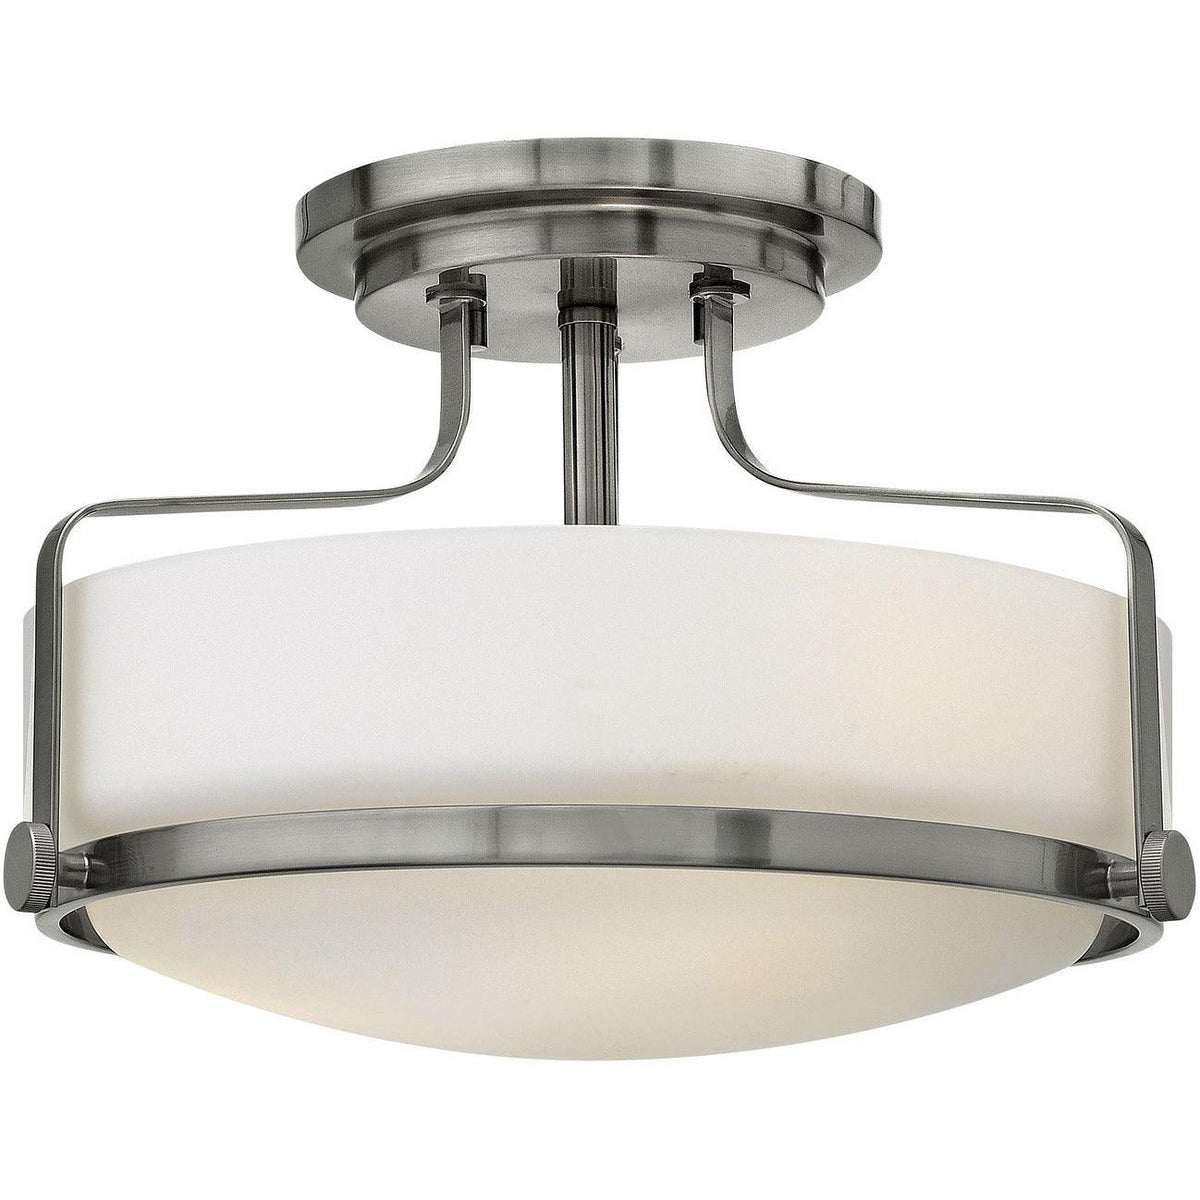 Hinkley Canada - 3641BN-LED - LED Semi-Flush Mount - Harper - Brushed Nickel